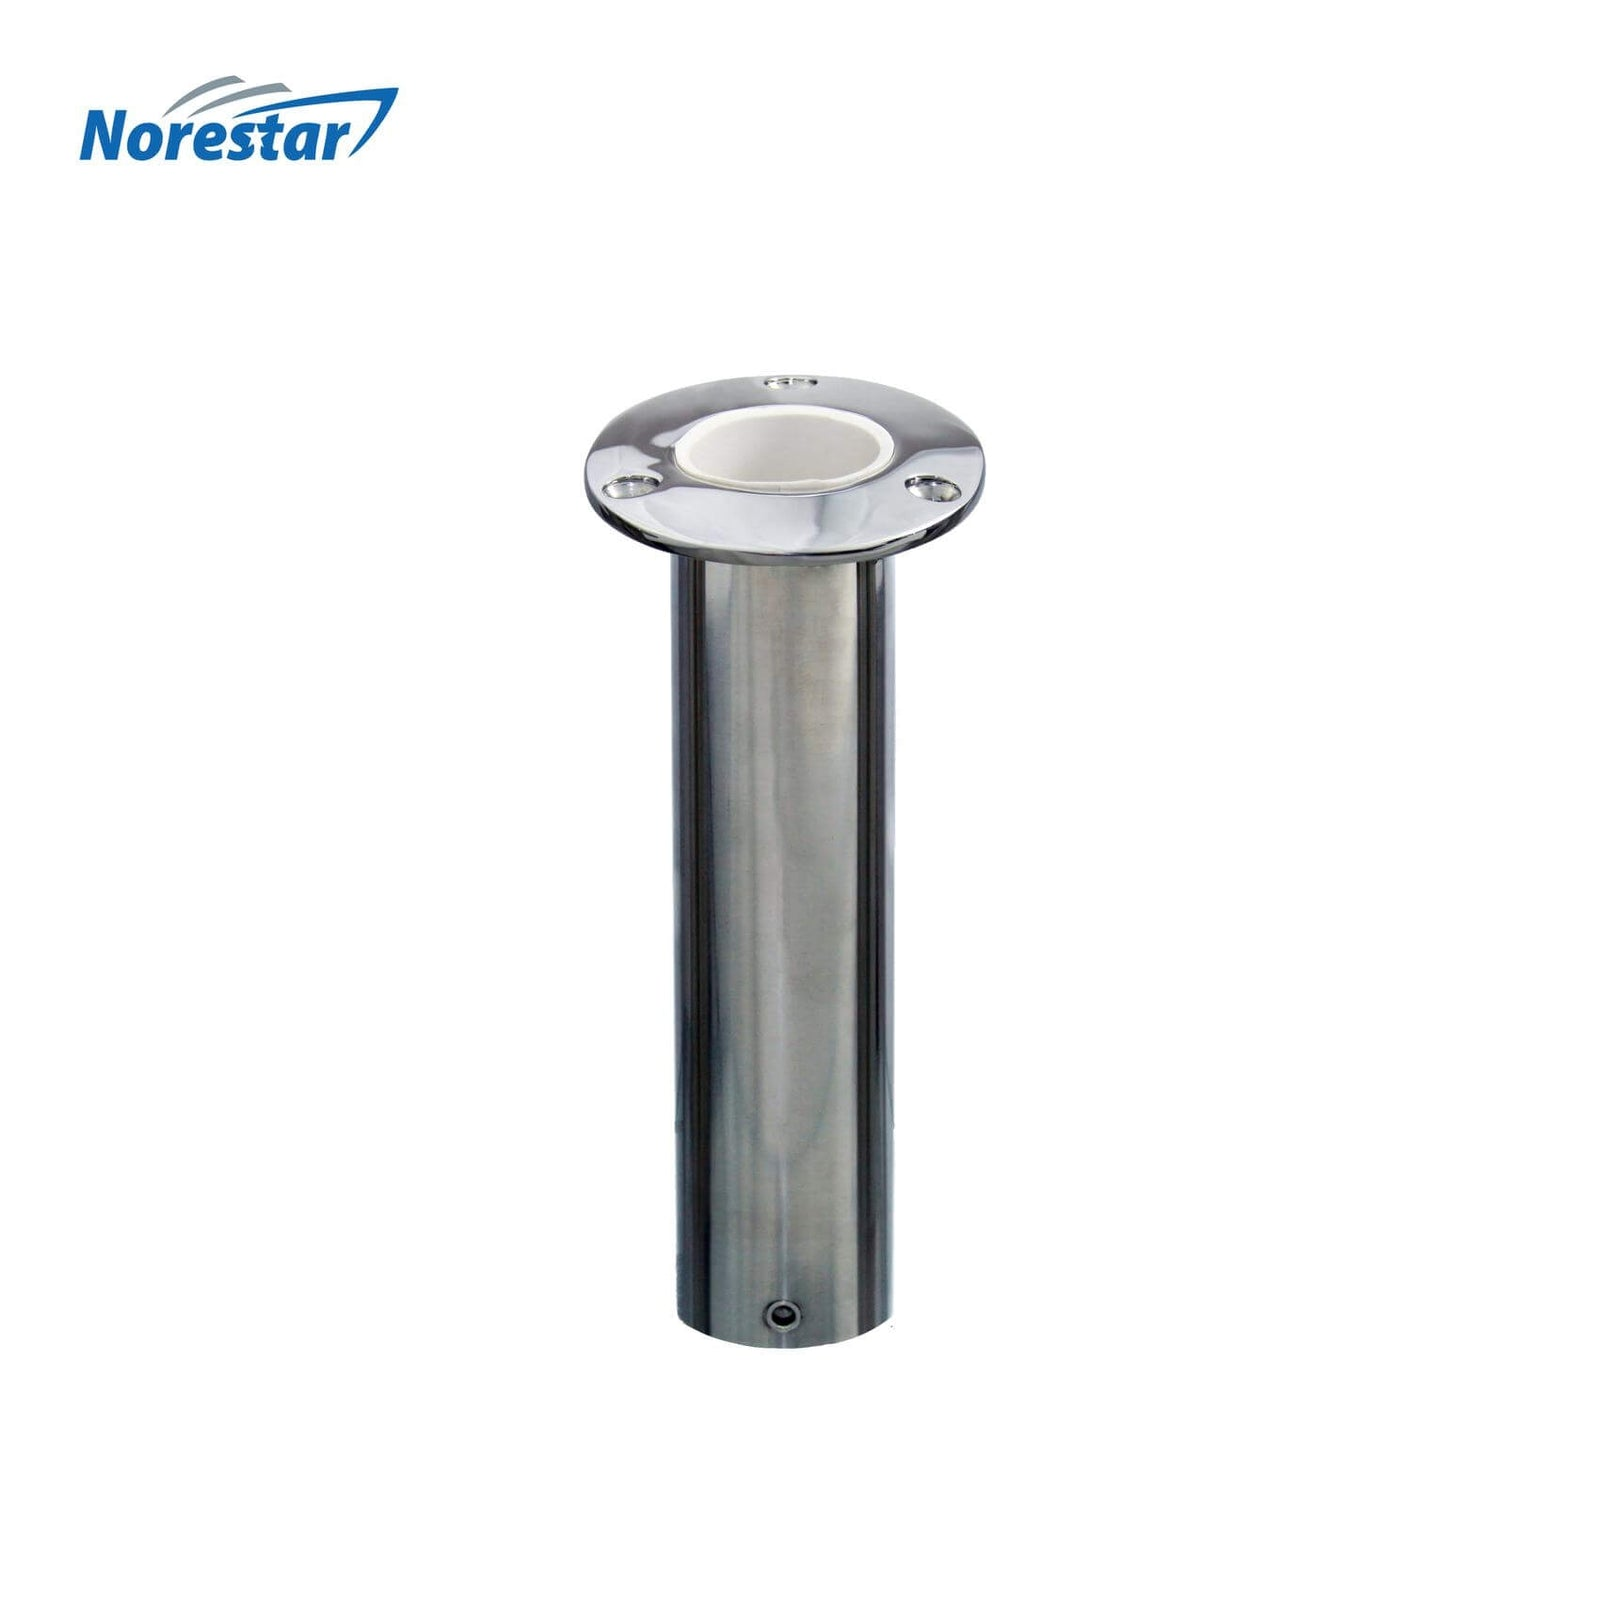 Flush Mounted Stainless Steel Rod Holder, Angled 15 Degrees